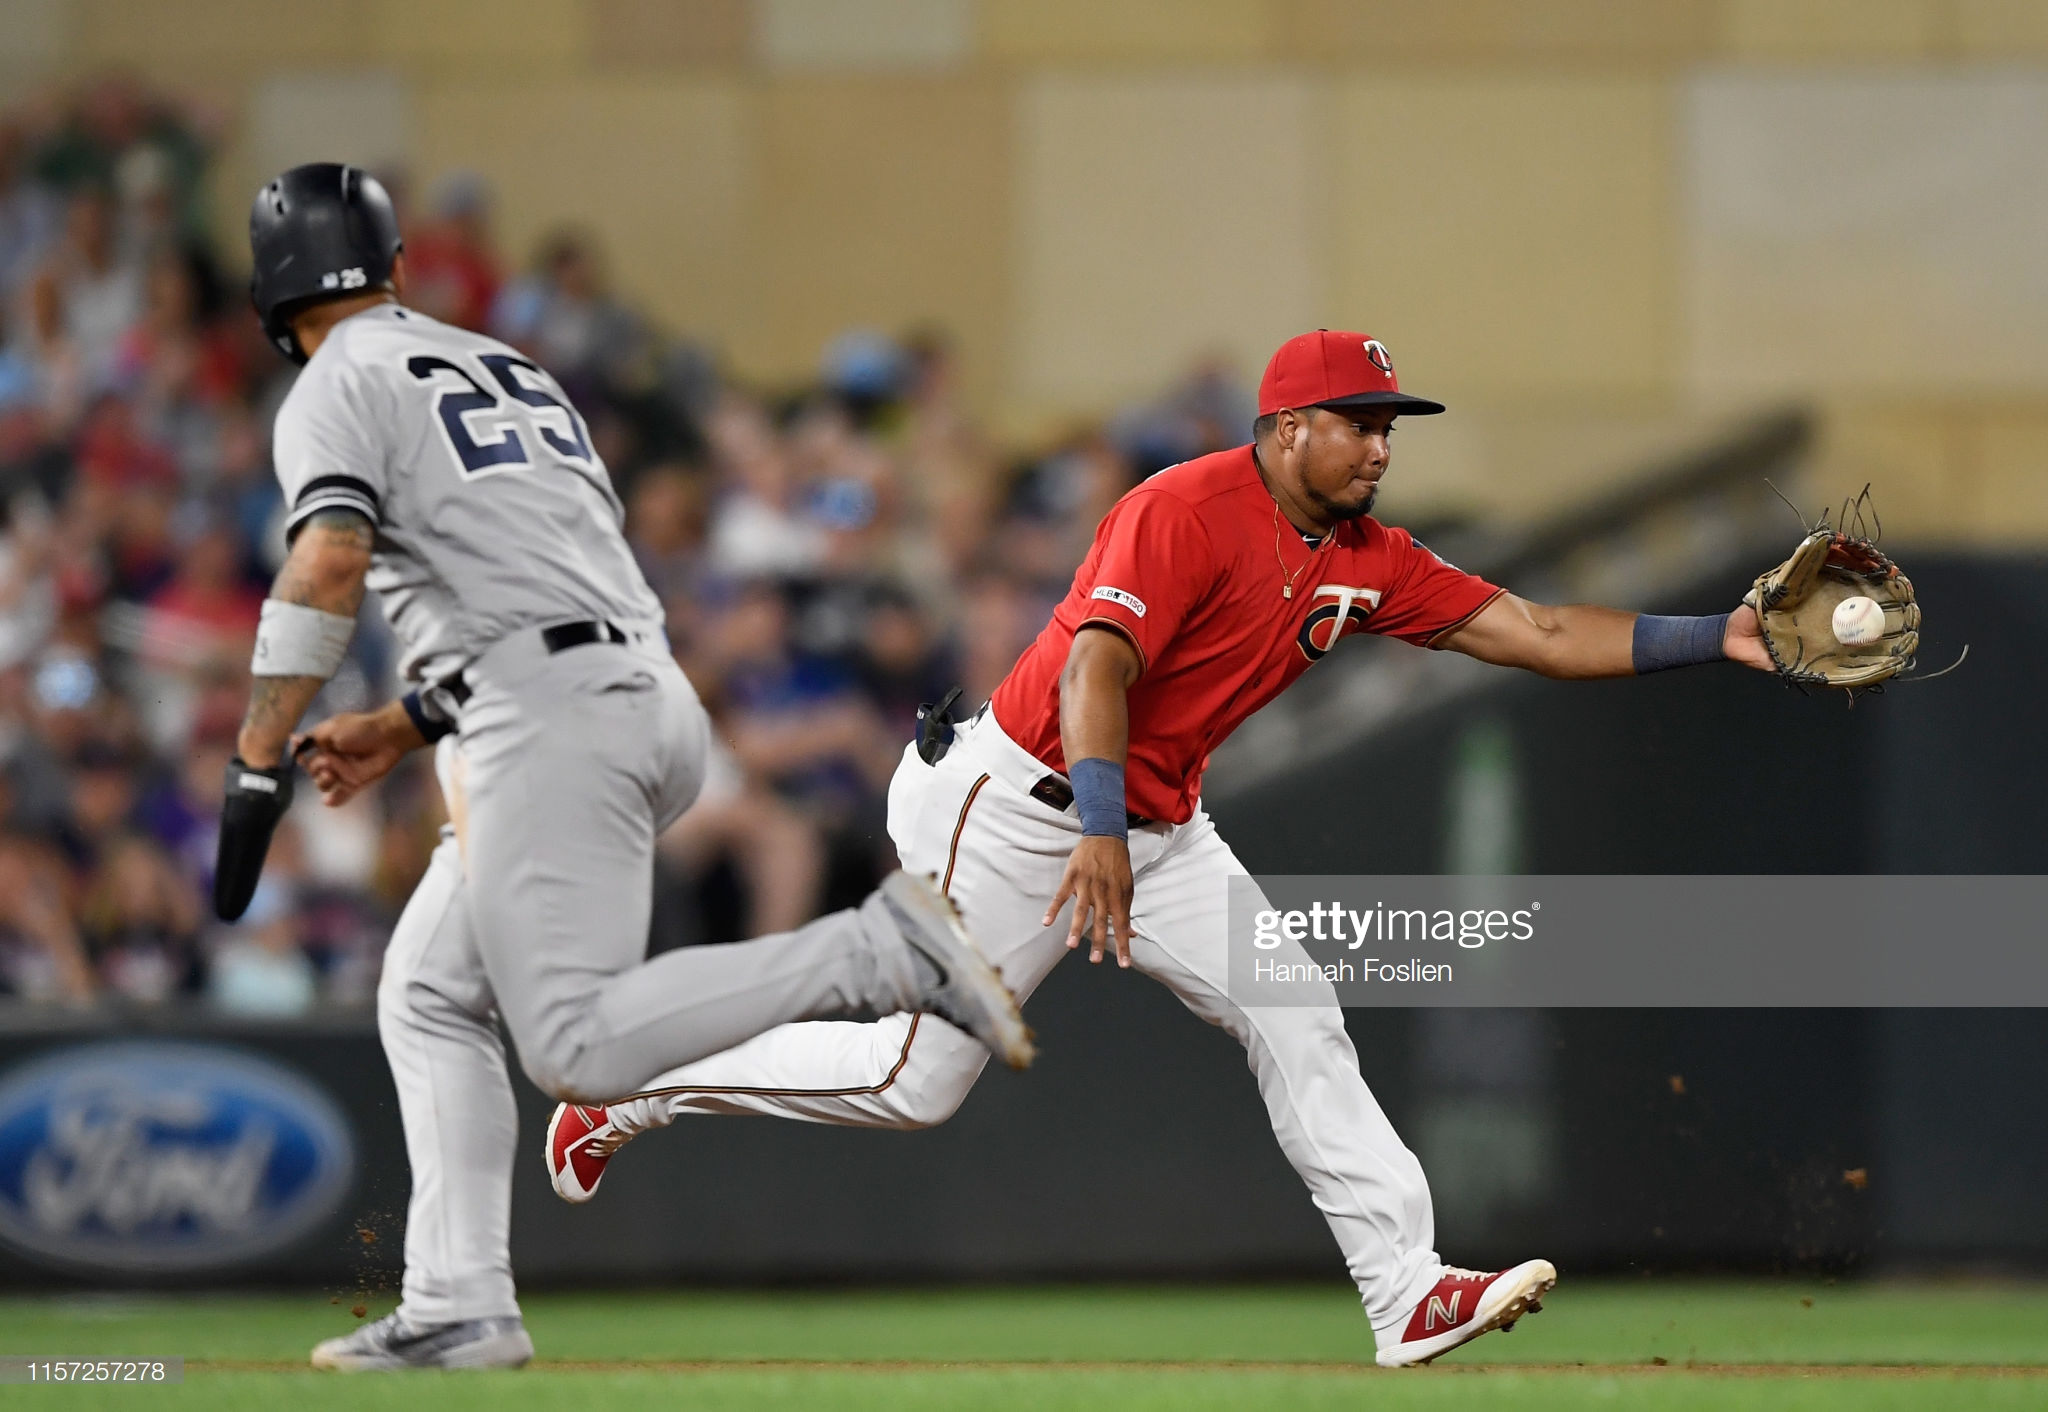 MINNEAPOLIS, MN - JULY 22: Gleyber Torres #25 of the New York Yankees runs to third base as Luis Arraez #2 of the Minnesota Twins fields the ball hit by Gio Urshela #29 of the New York Yankees during the sixth inning of the game on July 22, 2019 at Target Field in Minneapolis, Minnesota. (Photo by Hannah Foslien/Getty Images)